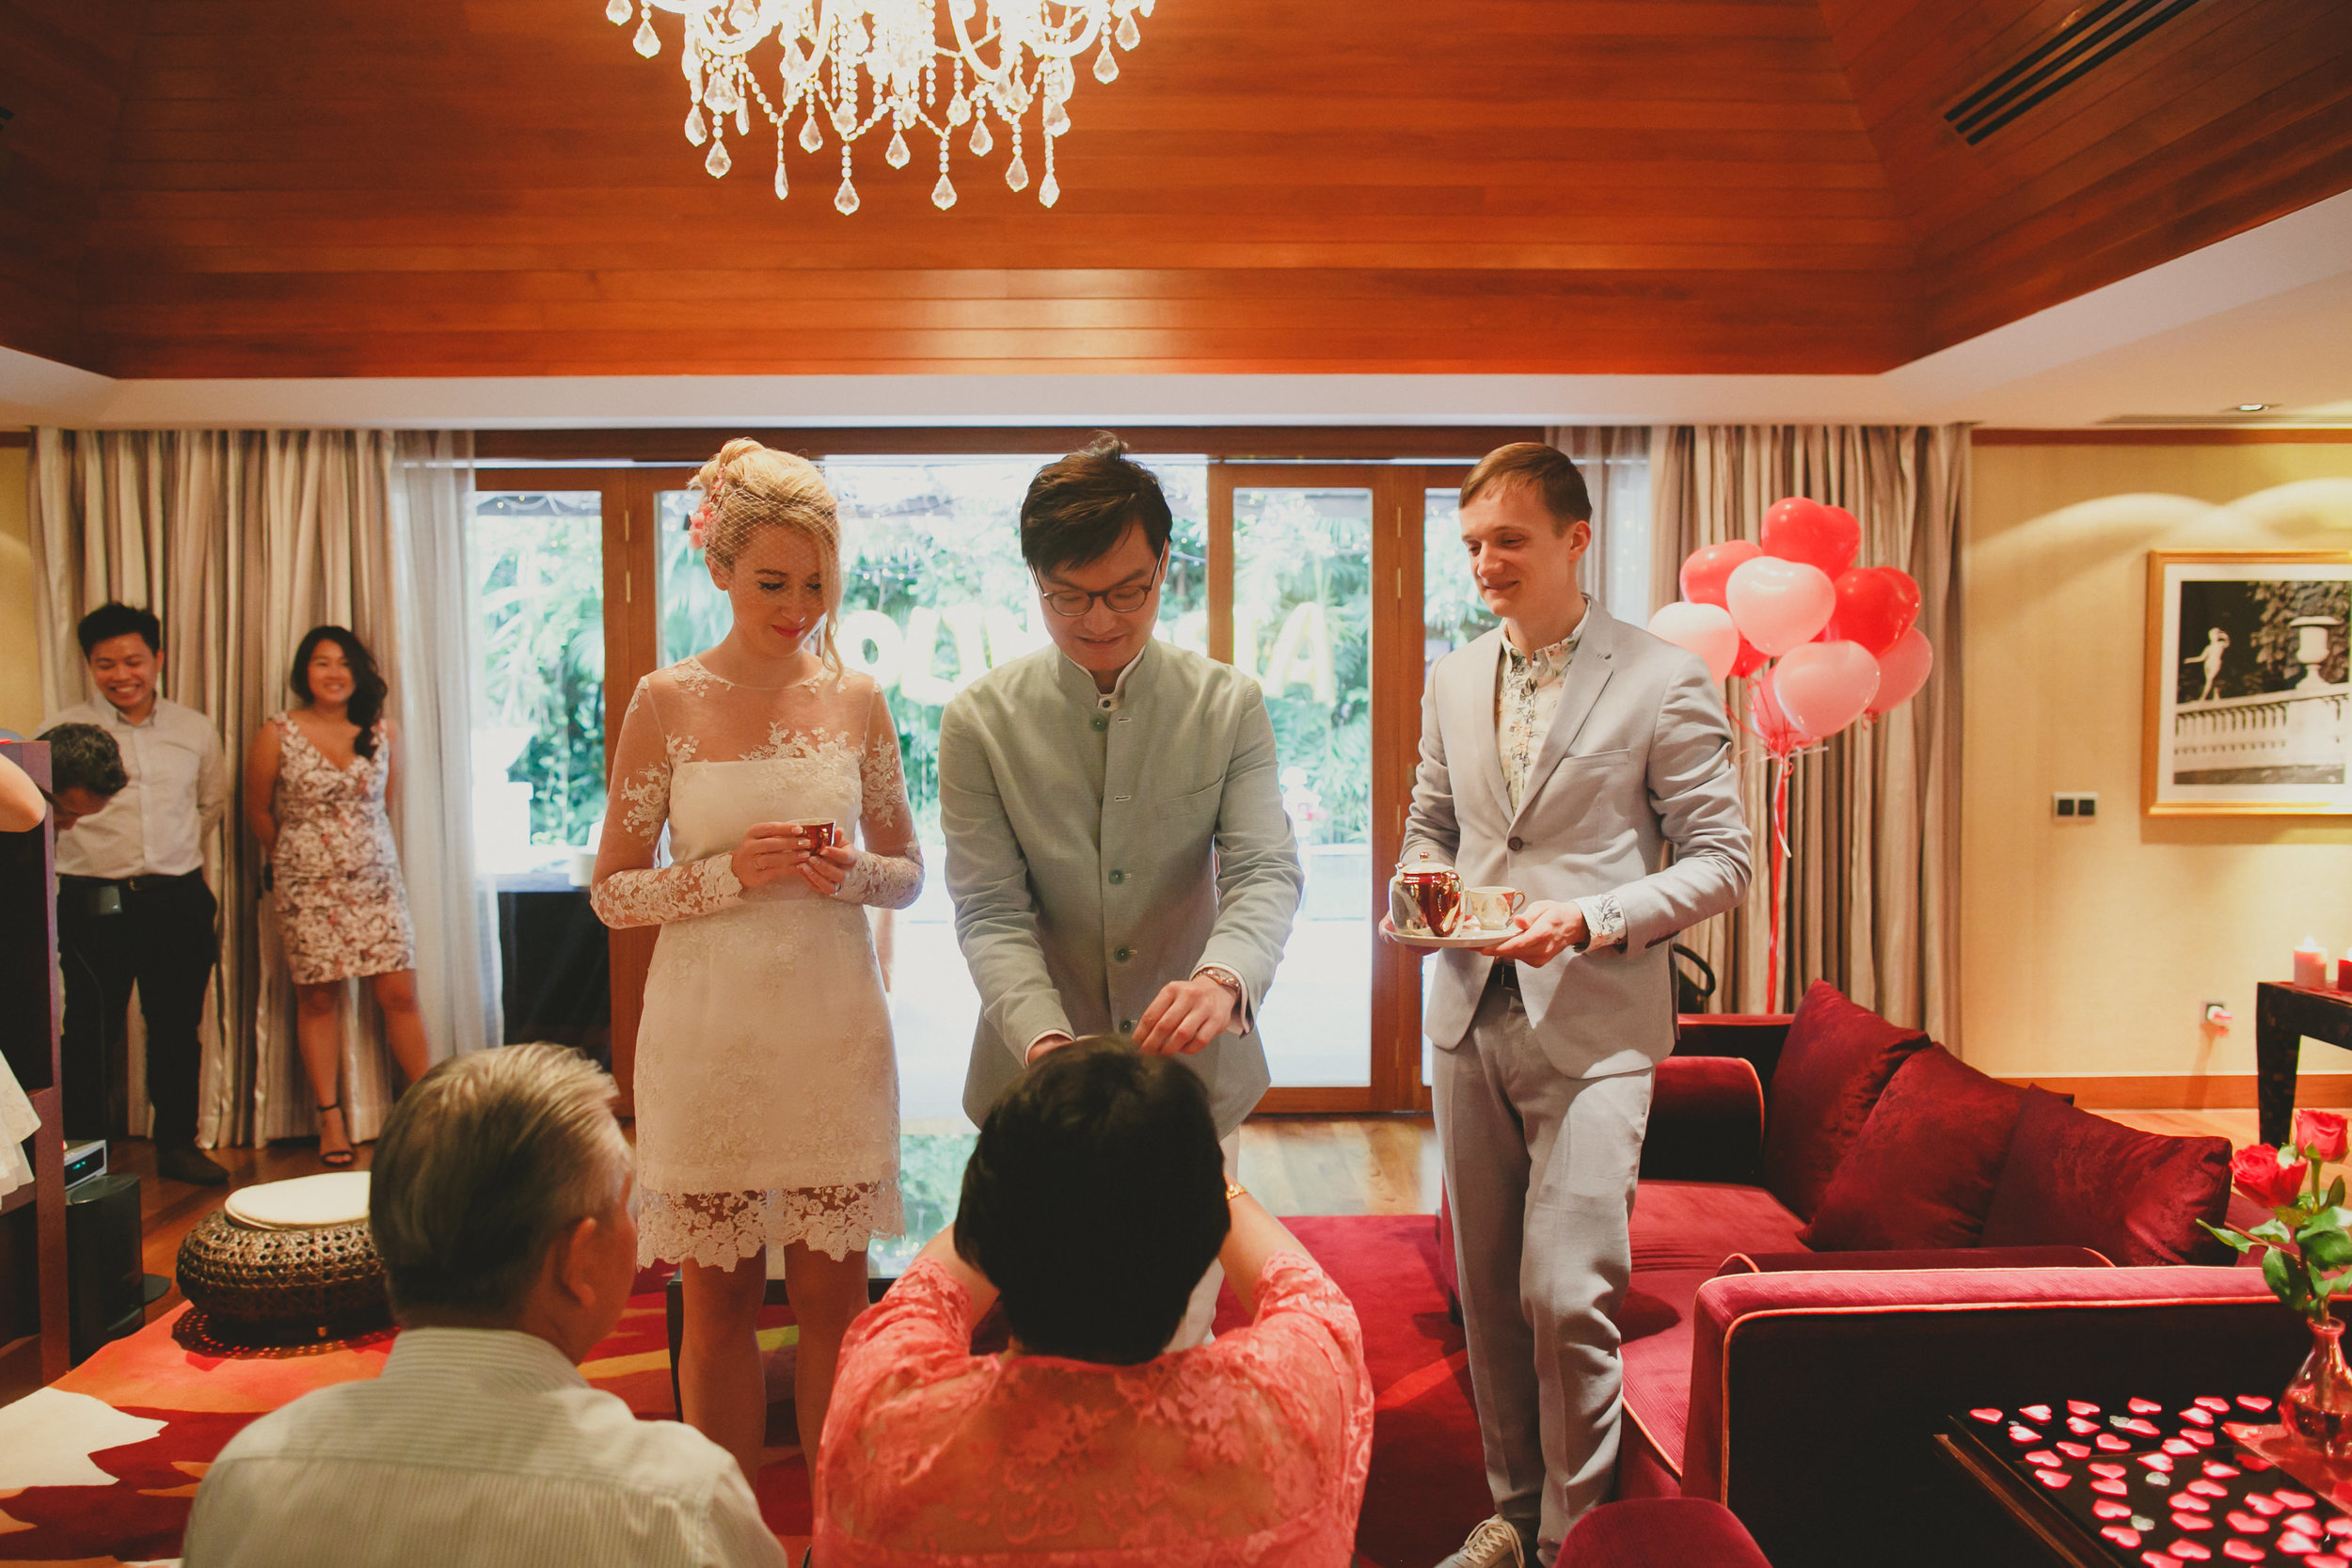 serving tea to parents as a sign of respect and official introduction of the bride